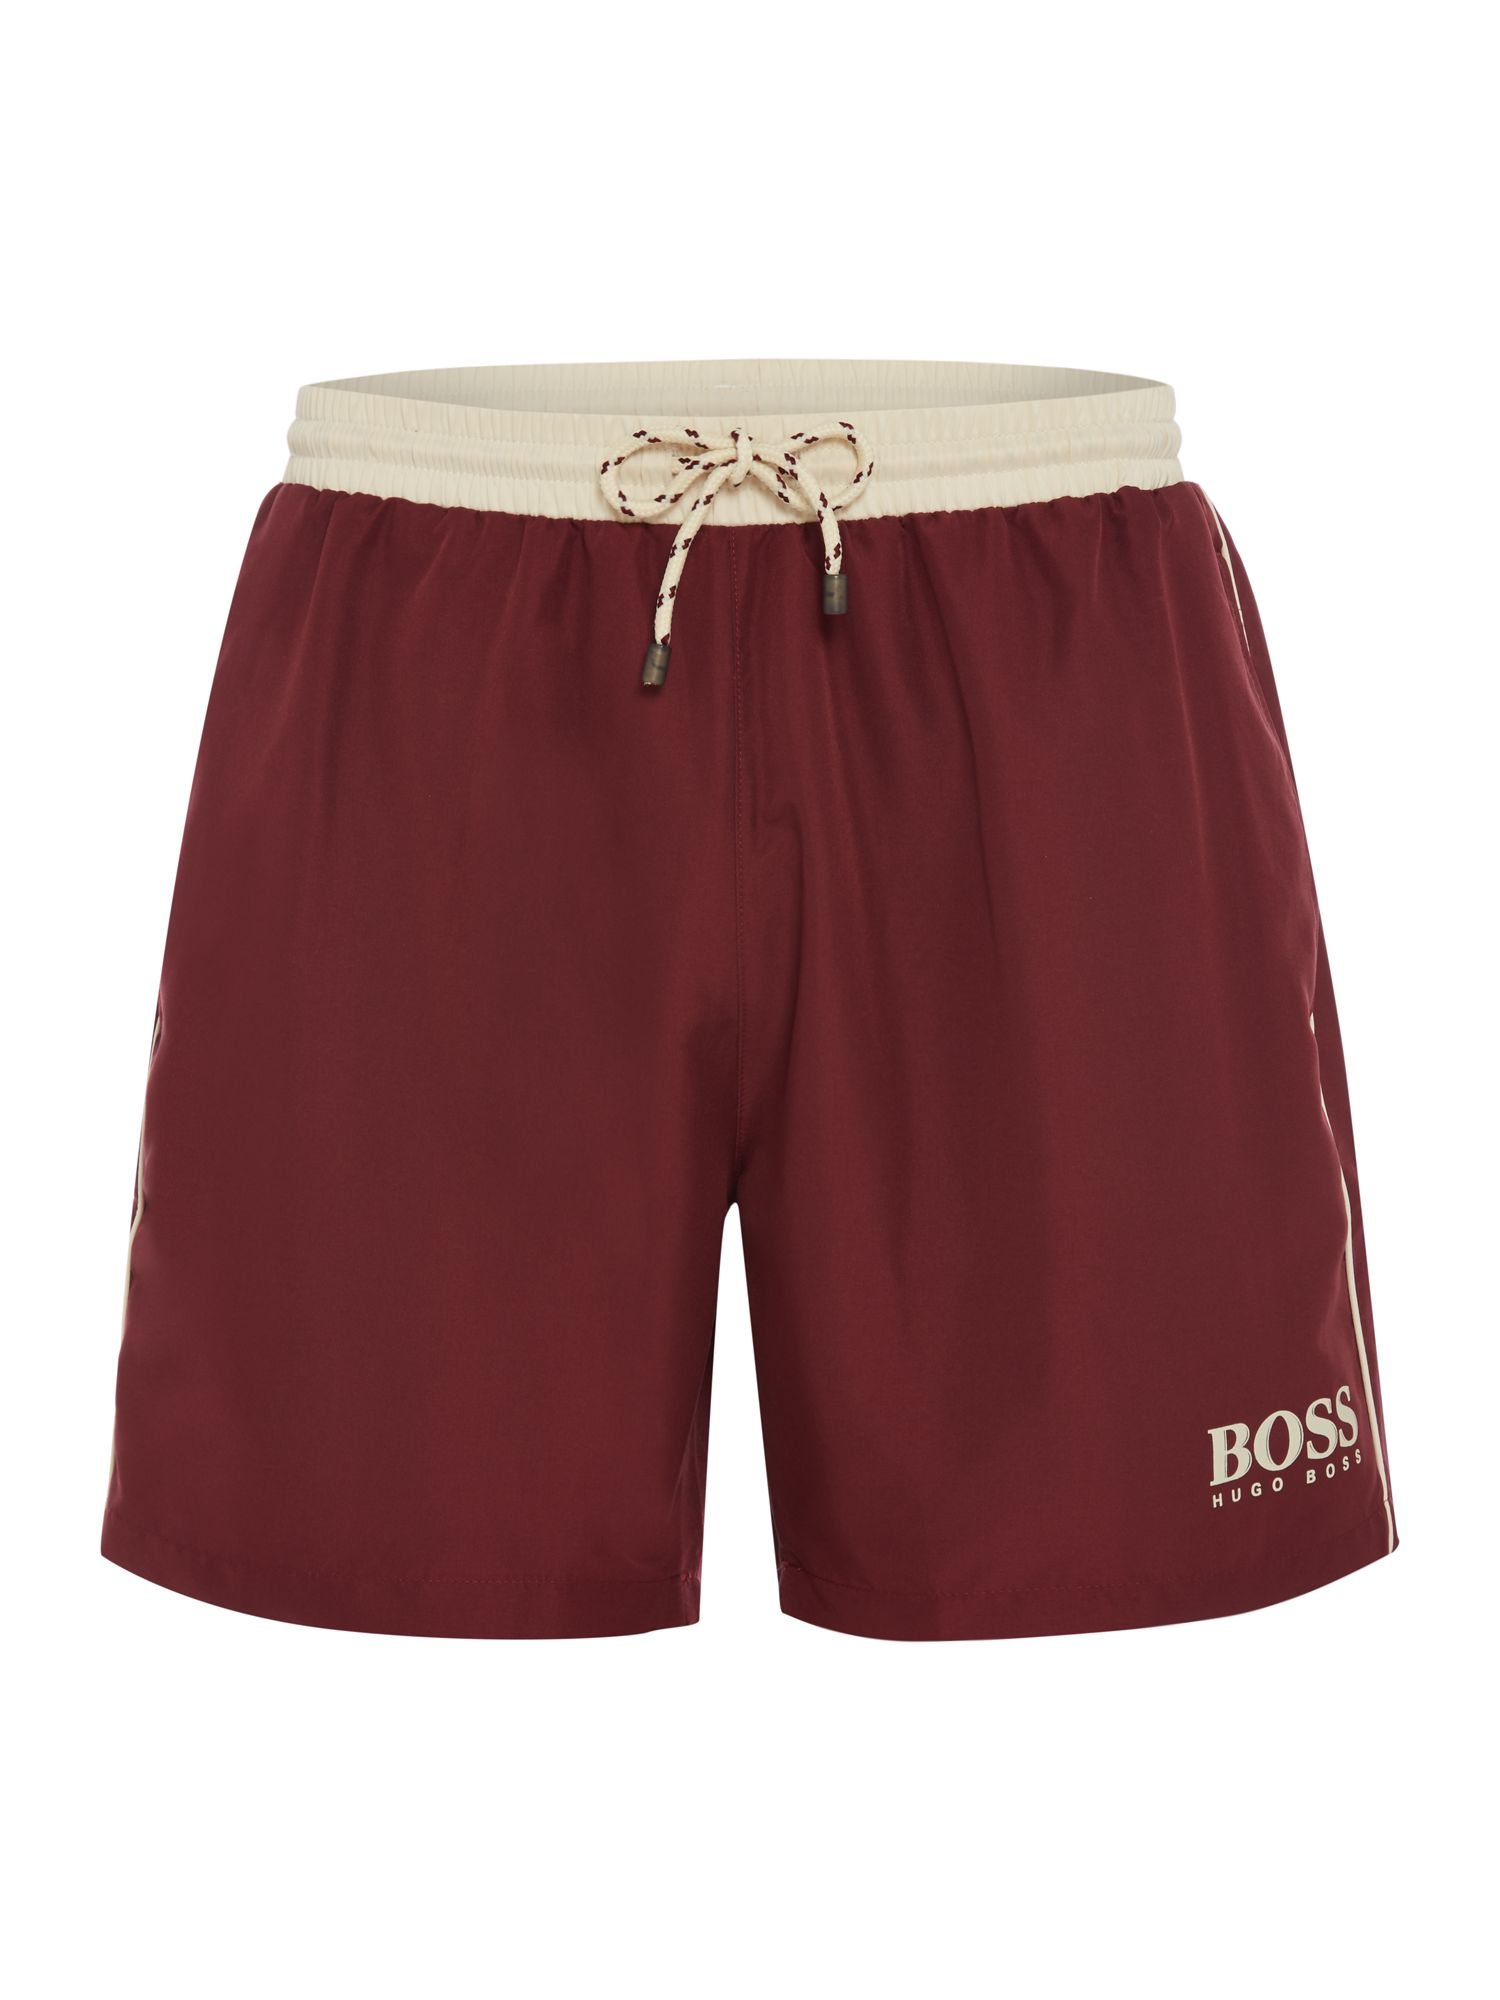 Men's Hugo Boss Starfish Swimshort, Red